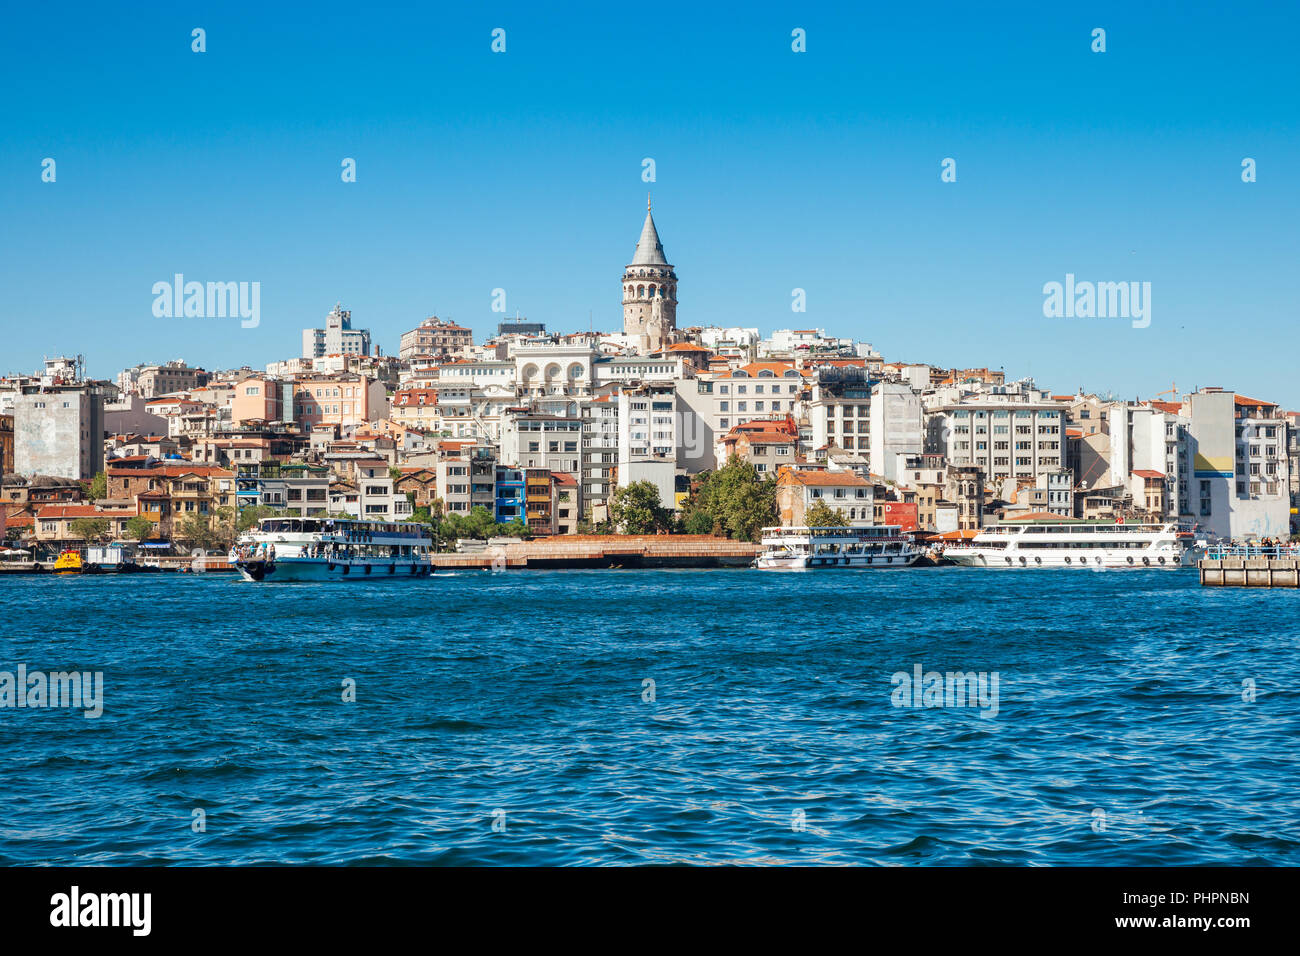 The beautiful view of the Galata Tower across the Golden Horn, Istanbul, Turkey - Stock Image